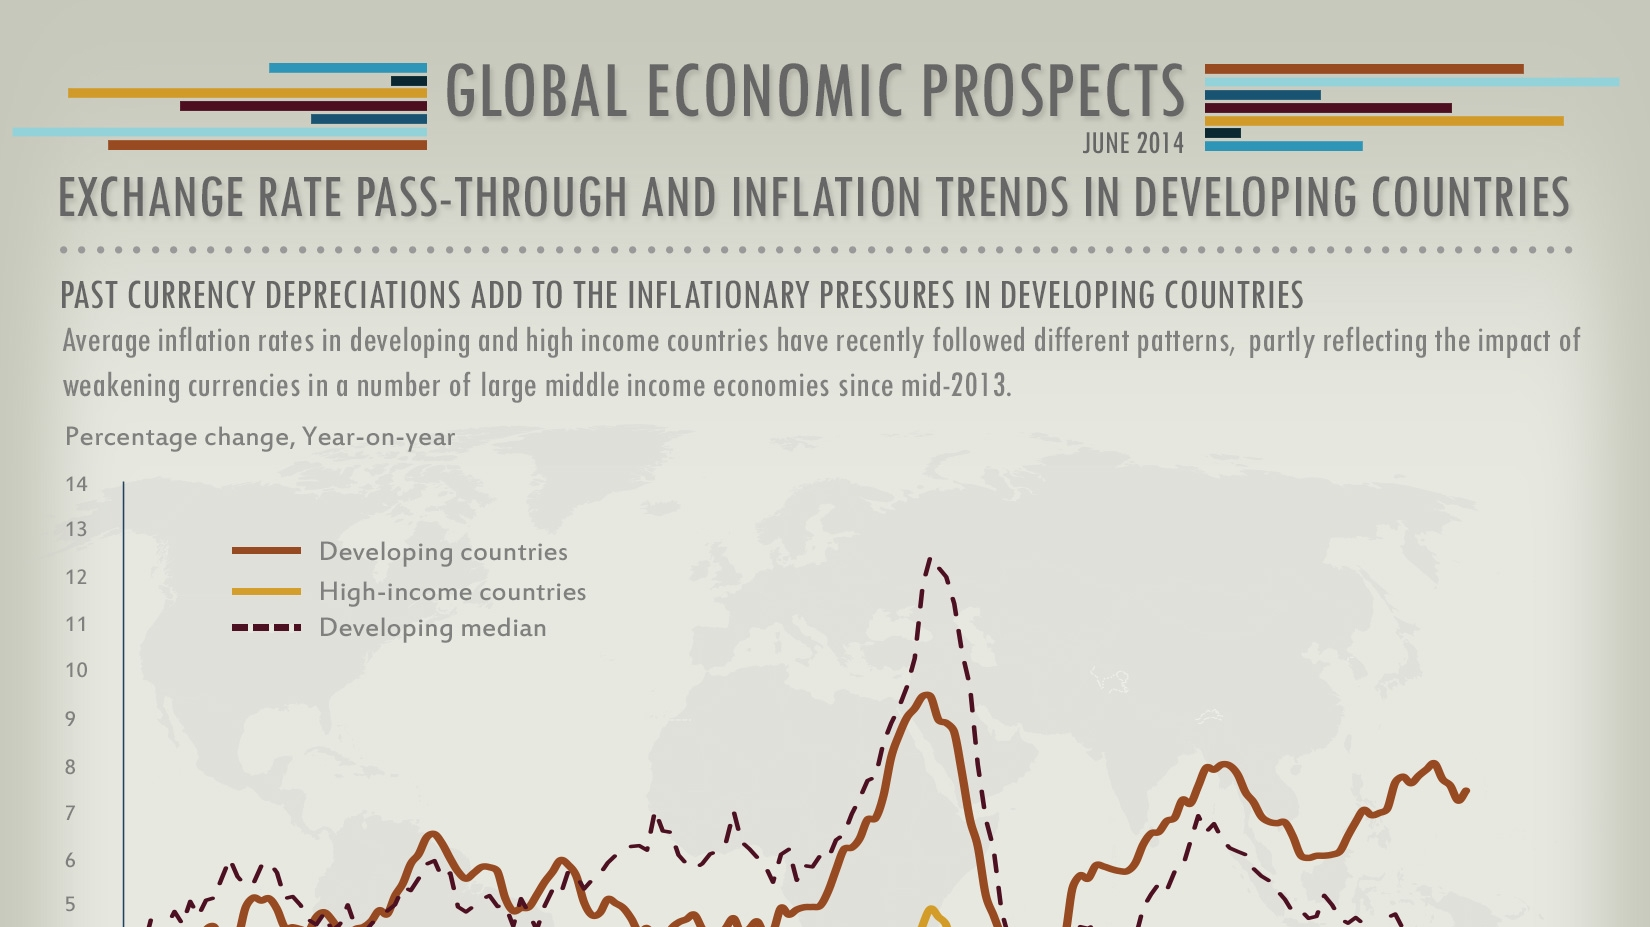 Exchange rate pass-through and inflation trends in developing countries